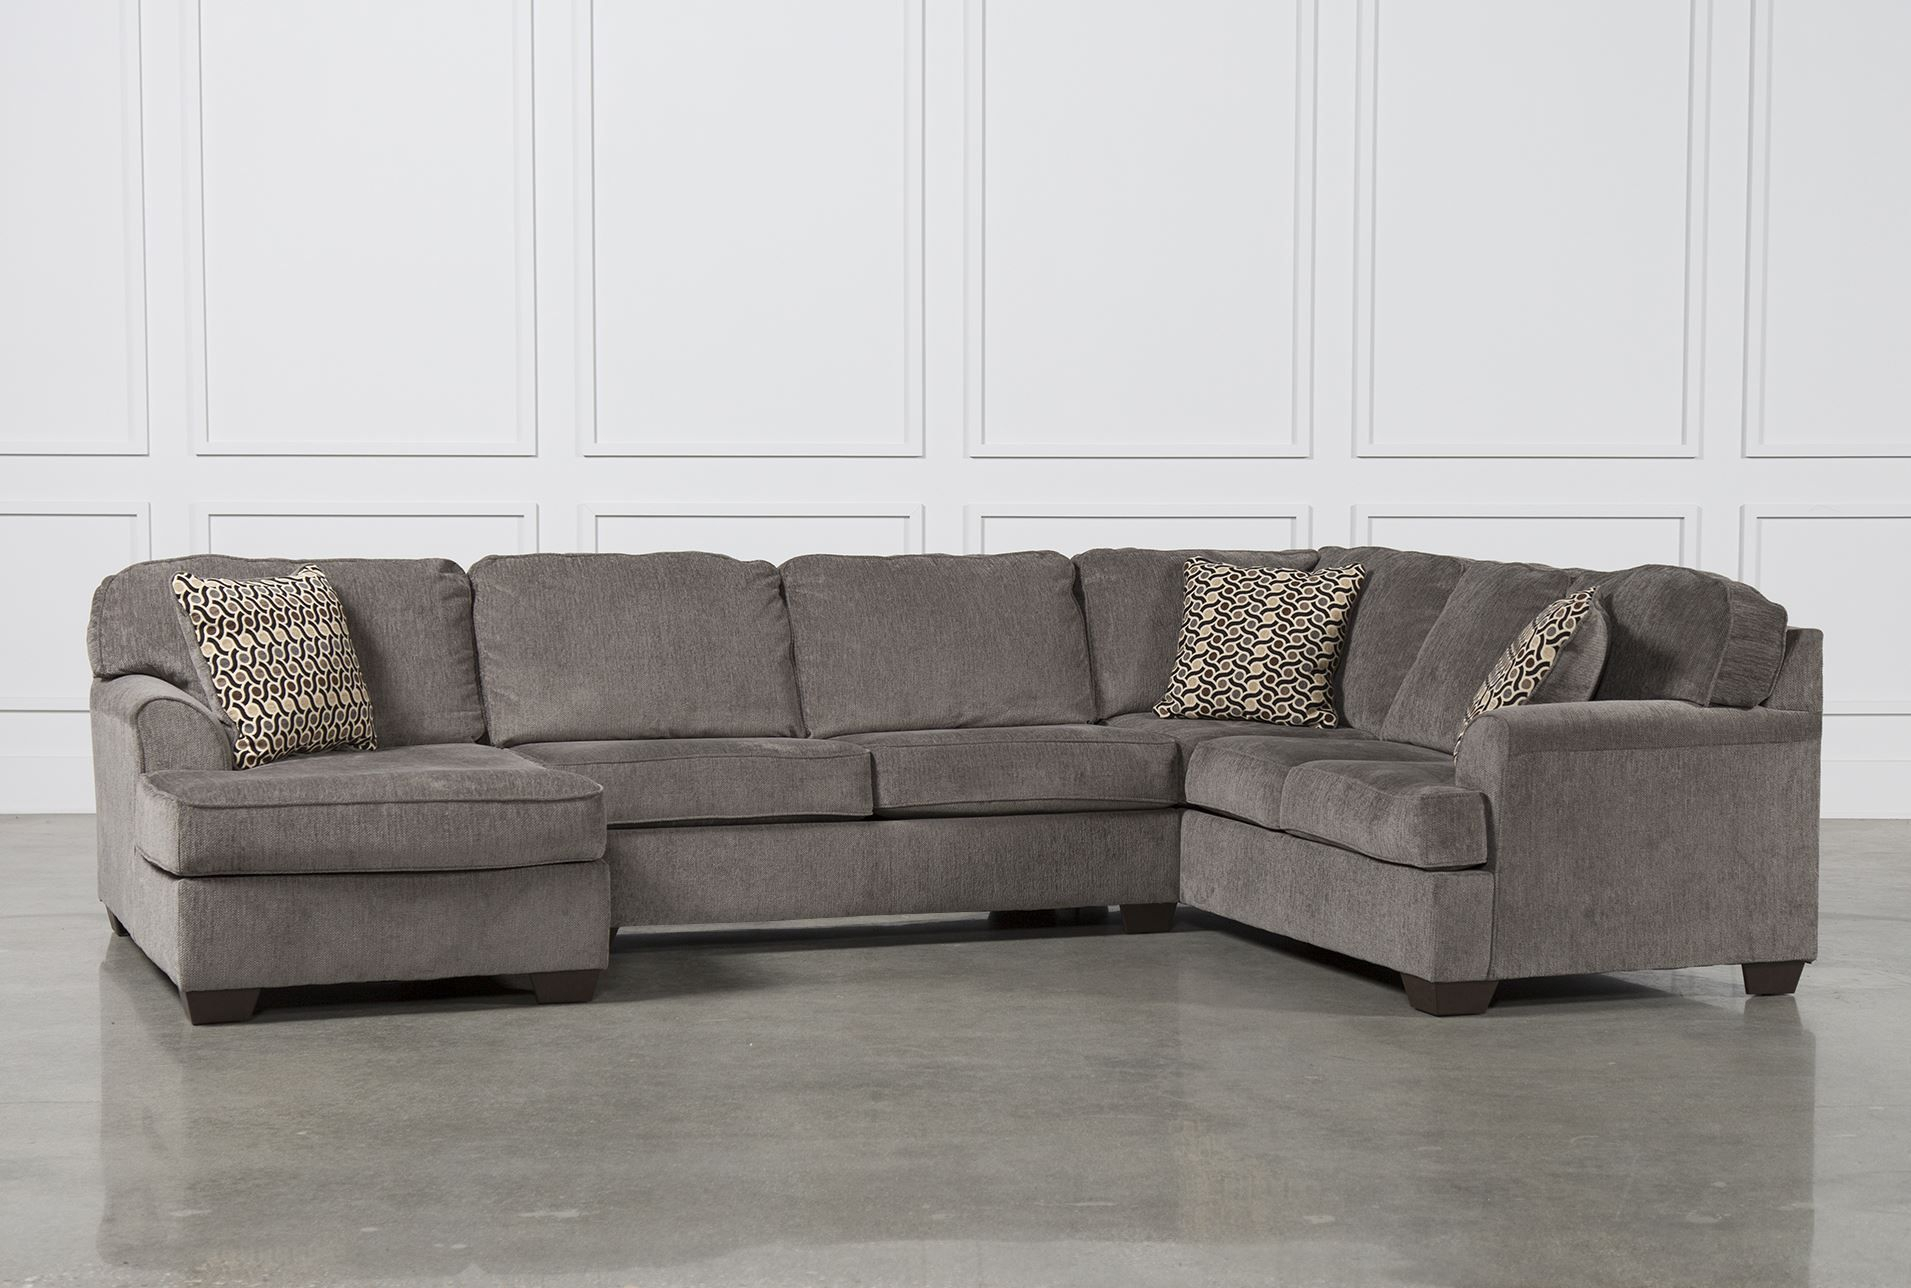 Loric Smoke 3 Piece Sectional W/Laf Chaise | Living Spaces Regarding Norfolk Grey 3 Piece Sectionals With Laf Chaise (View 9 of 15)